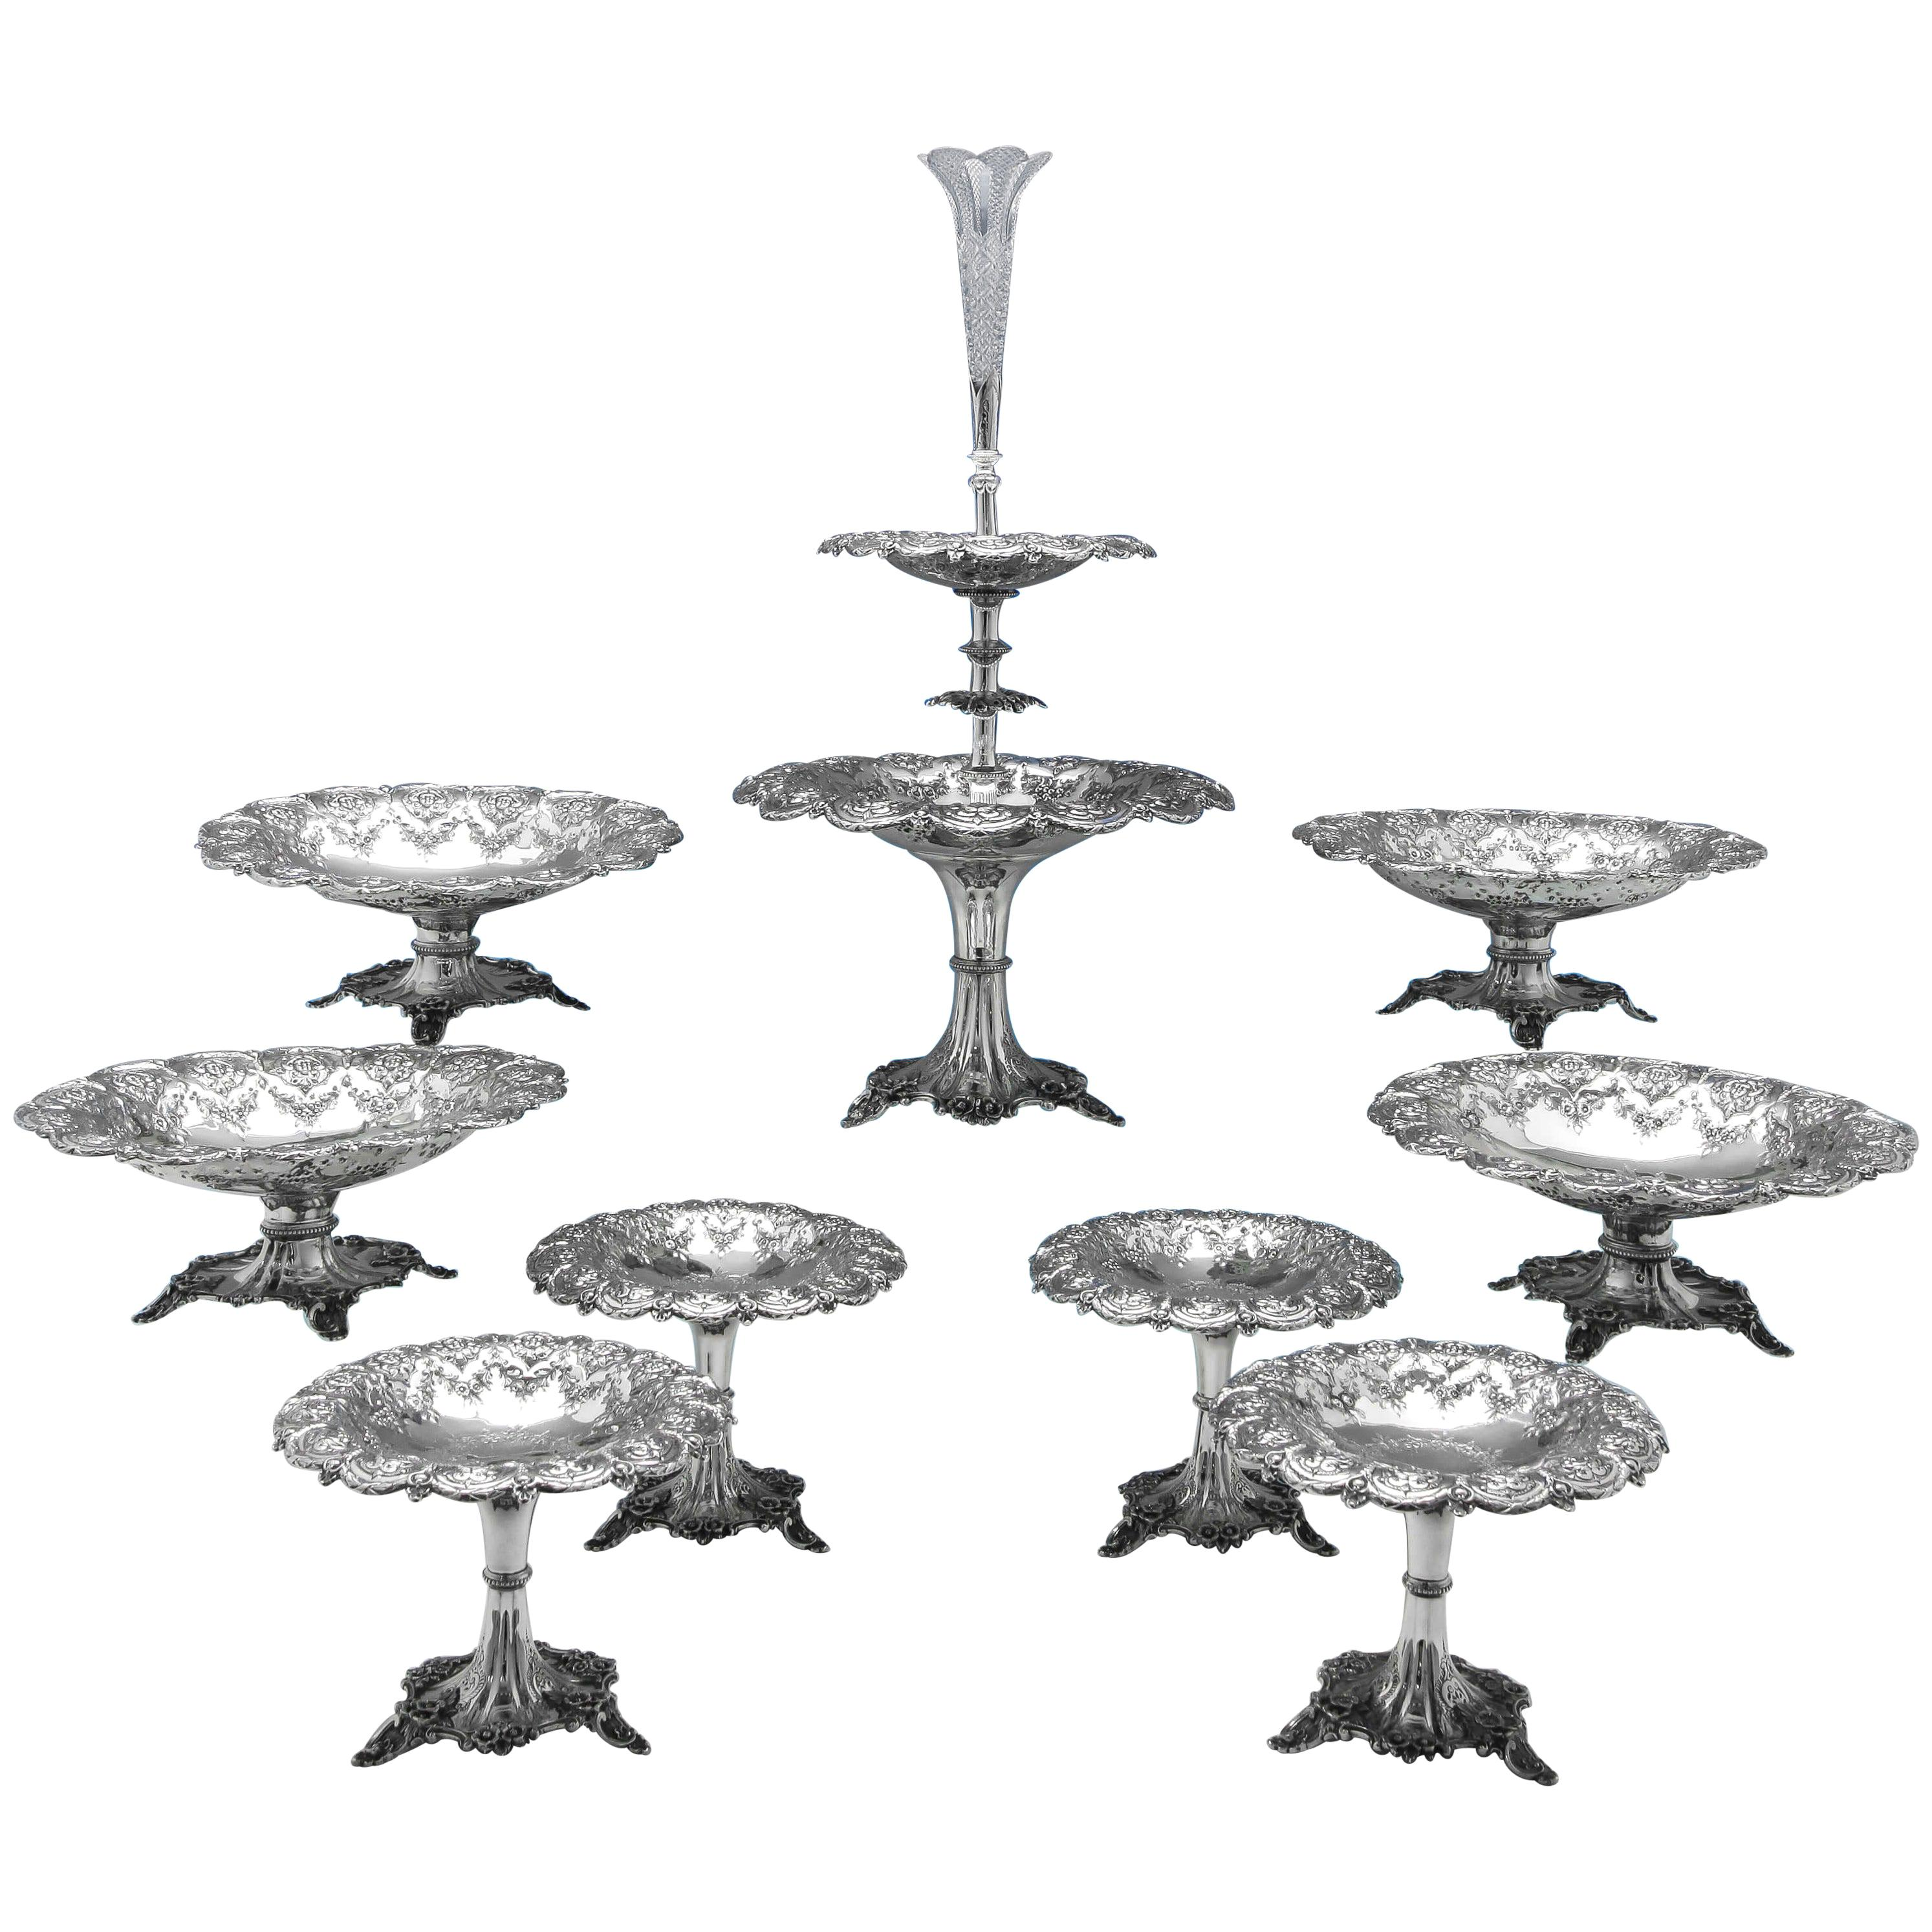 Decorative Victorian Antique Sterling Silver Centrepiece and Suite of 8 Dishes